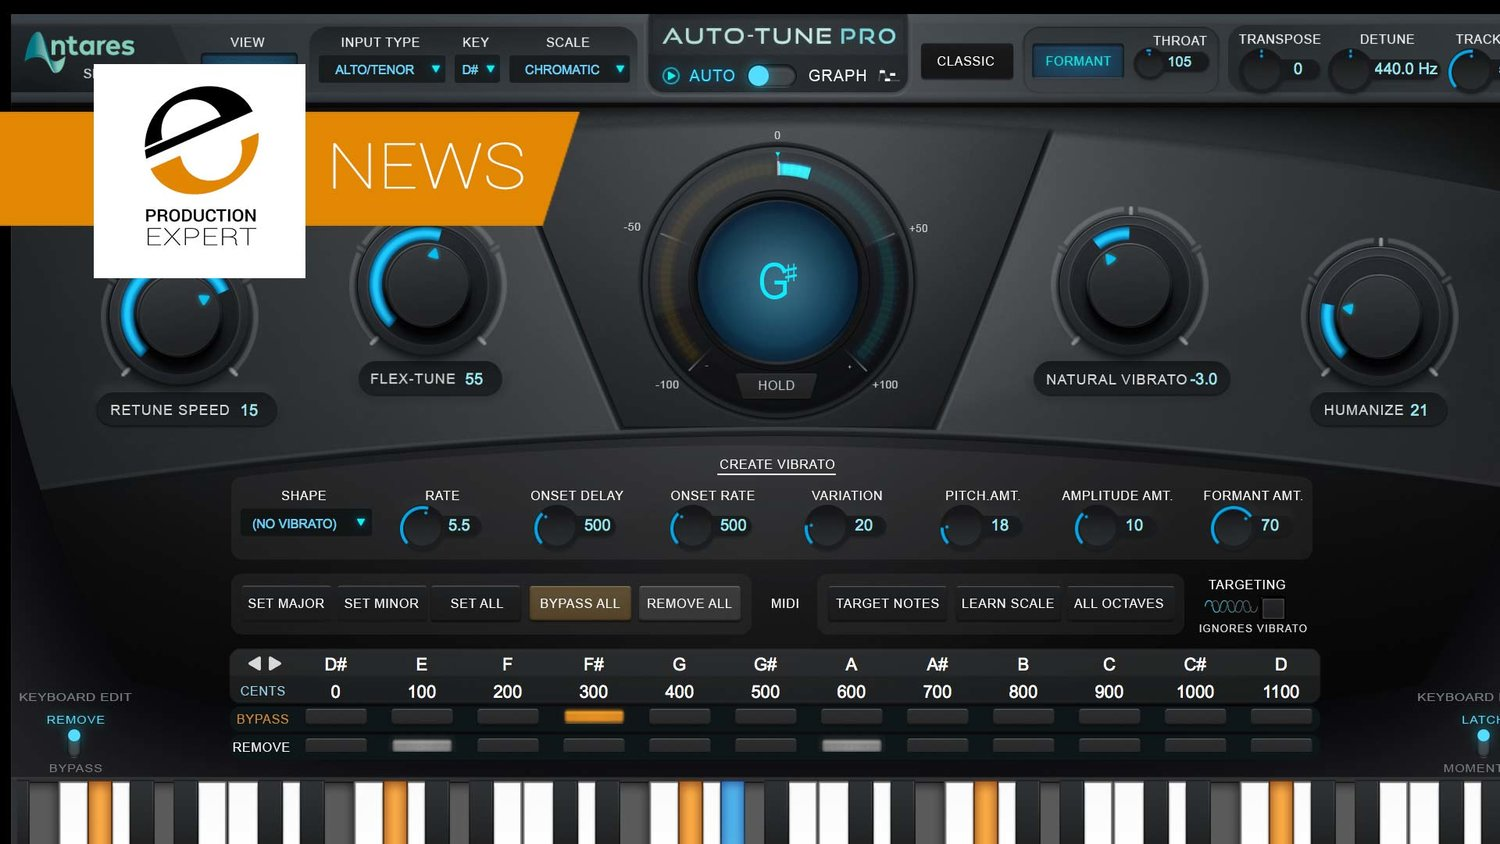 Antares Auto-Tune Pro Now Shipping | Production Expert